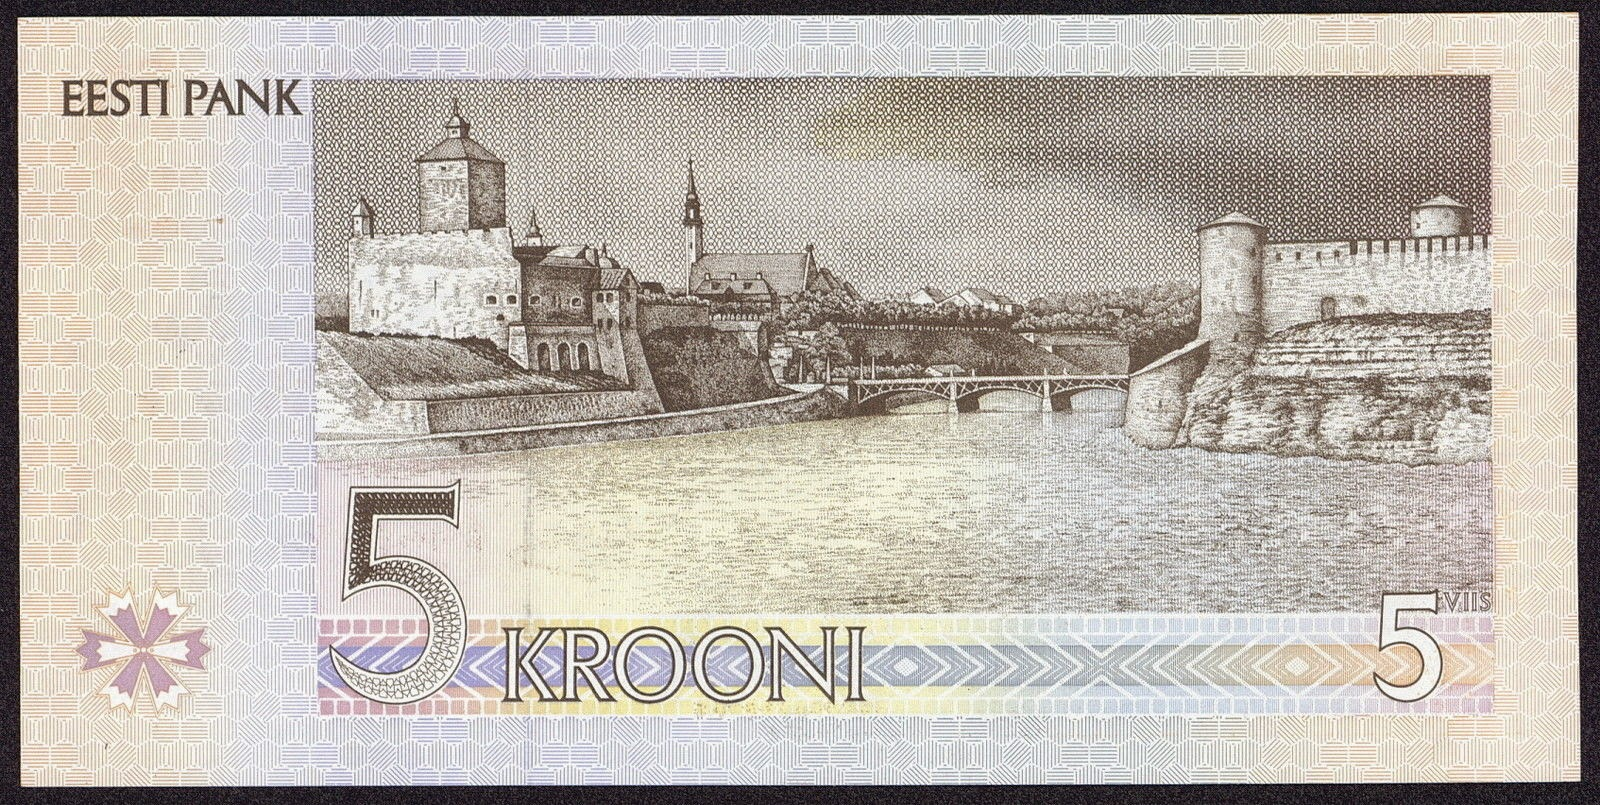 Estonia banknotes 5 krooni note, Narva Hermann Castle and Ivangorod Fortress